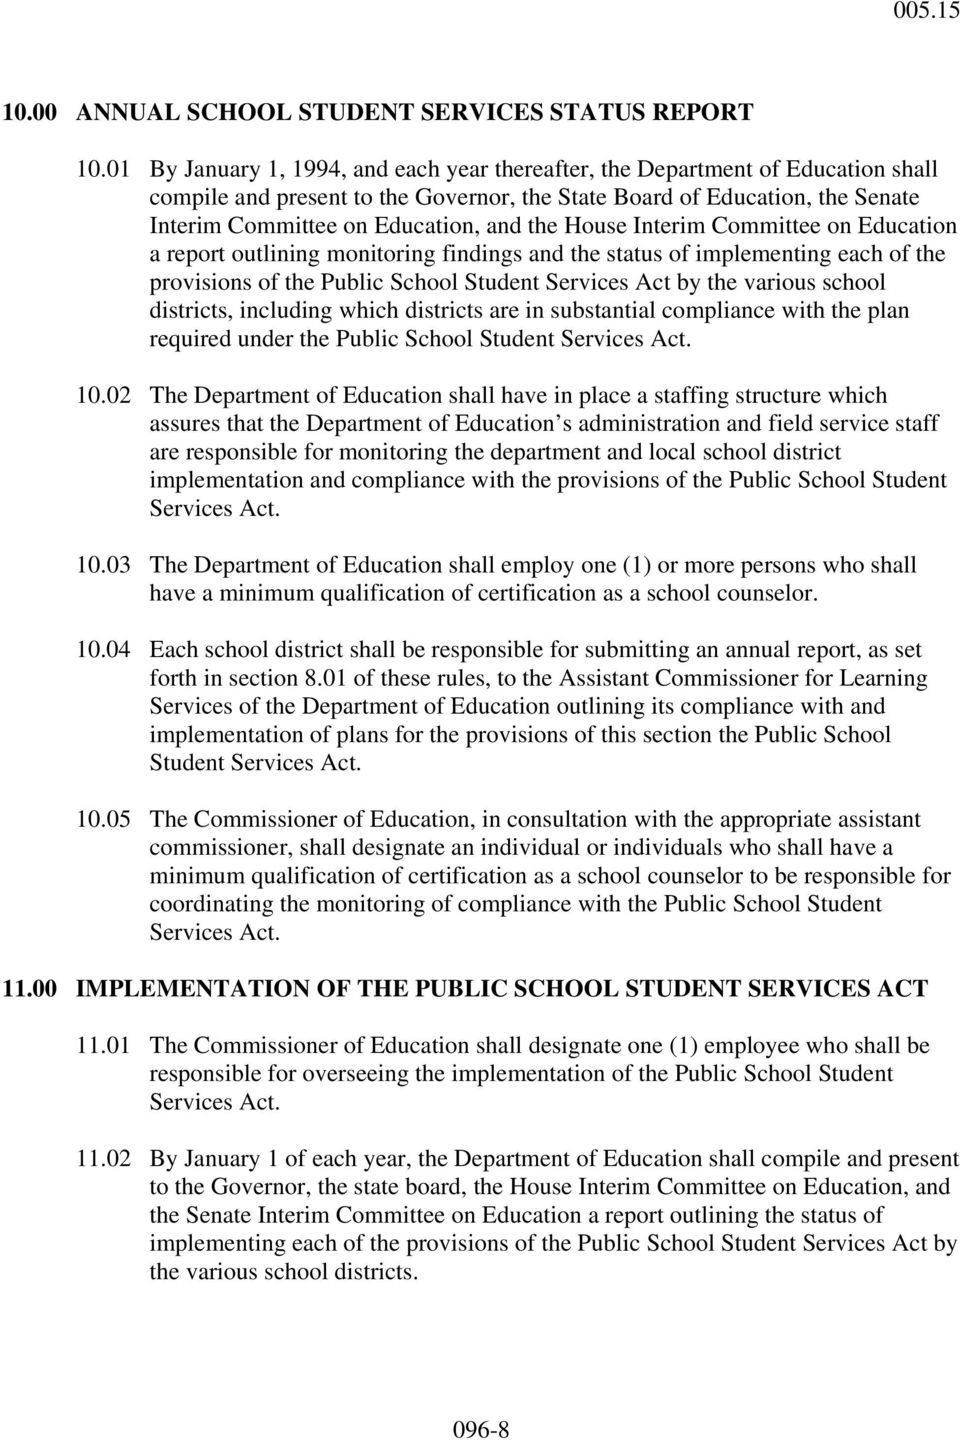 the House Interim Committee on Education a report outlining monitoring findings and the status of implementing each of the provisions of the Public School Student Services Act by the various school